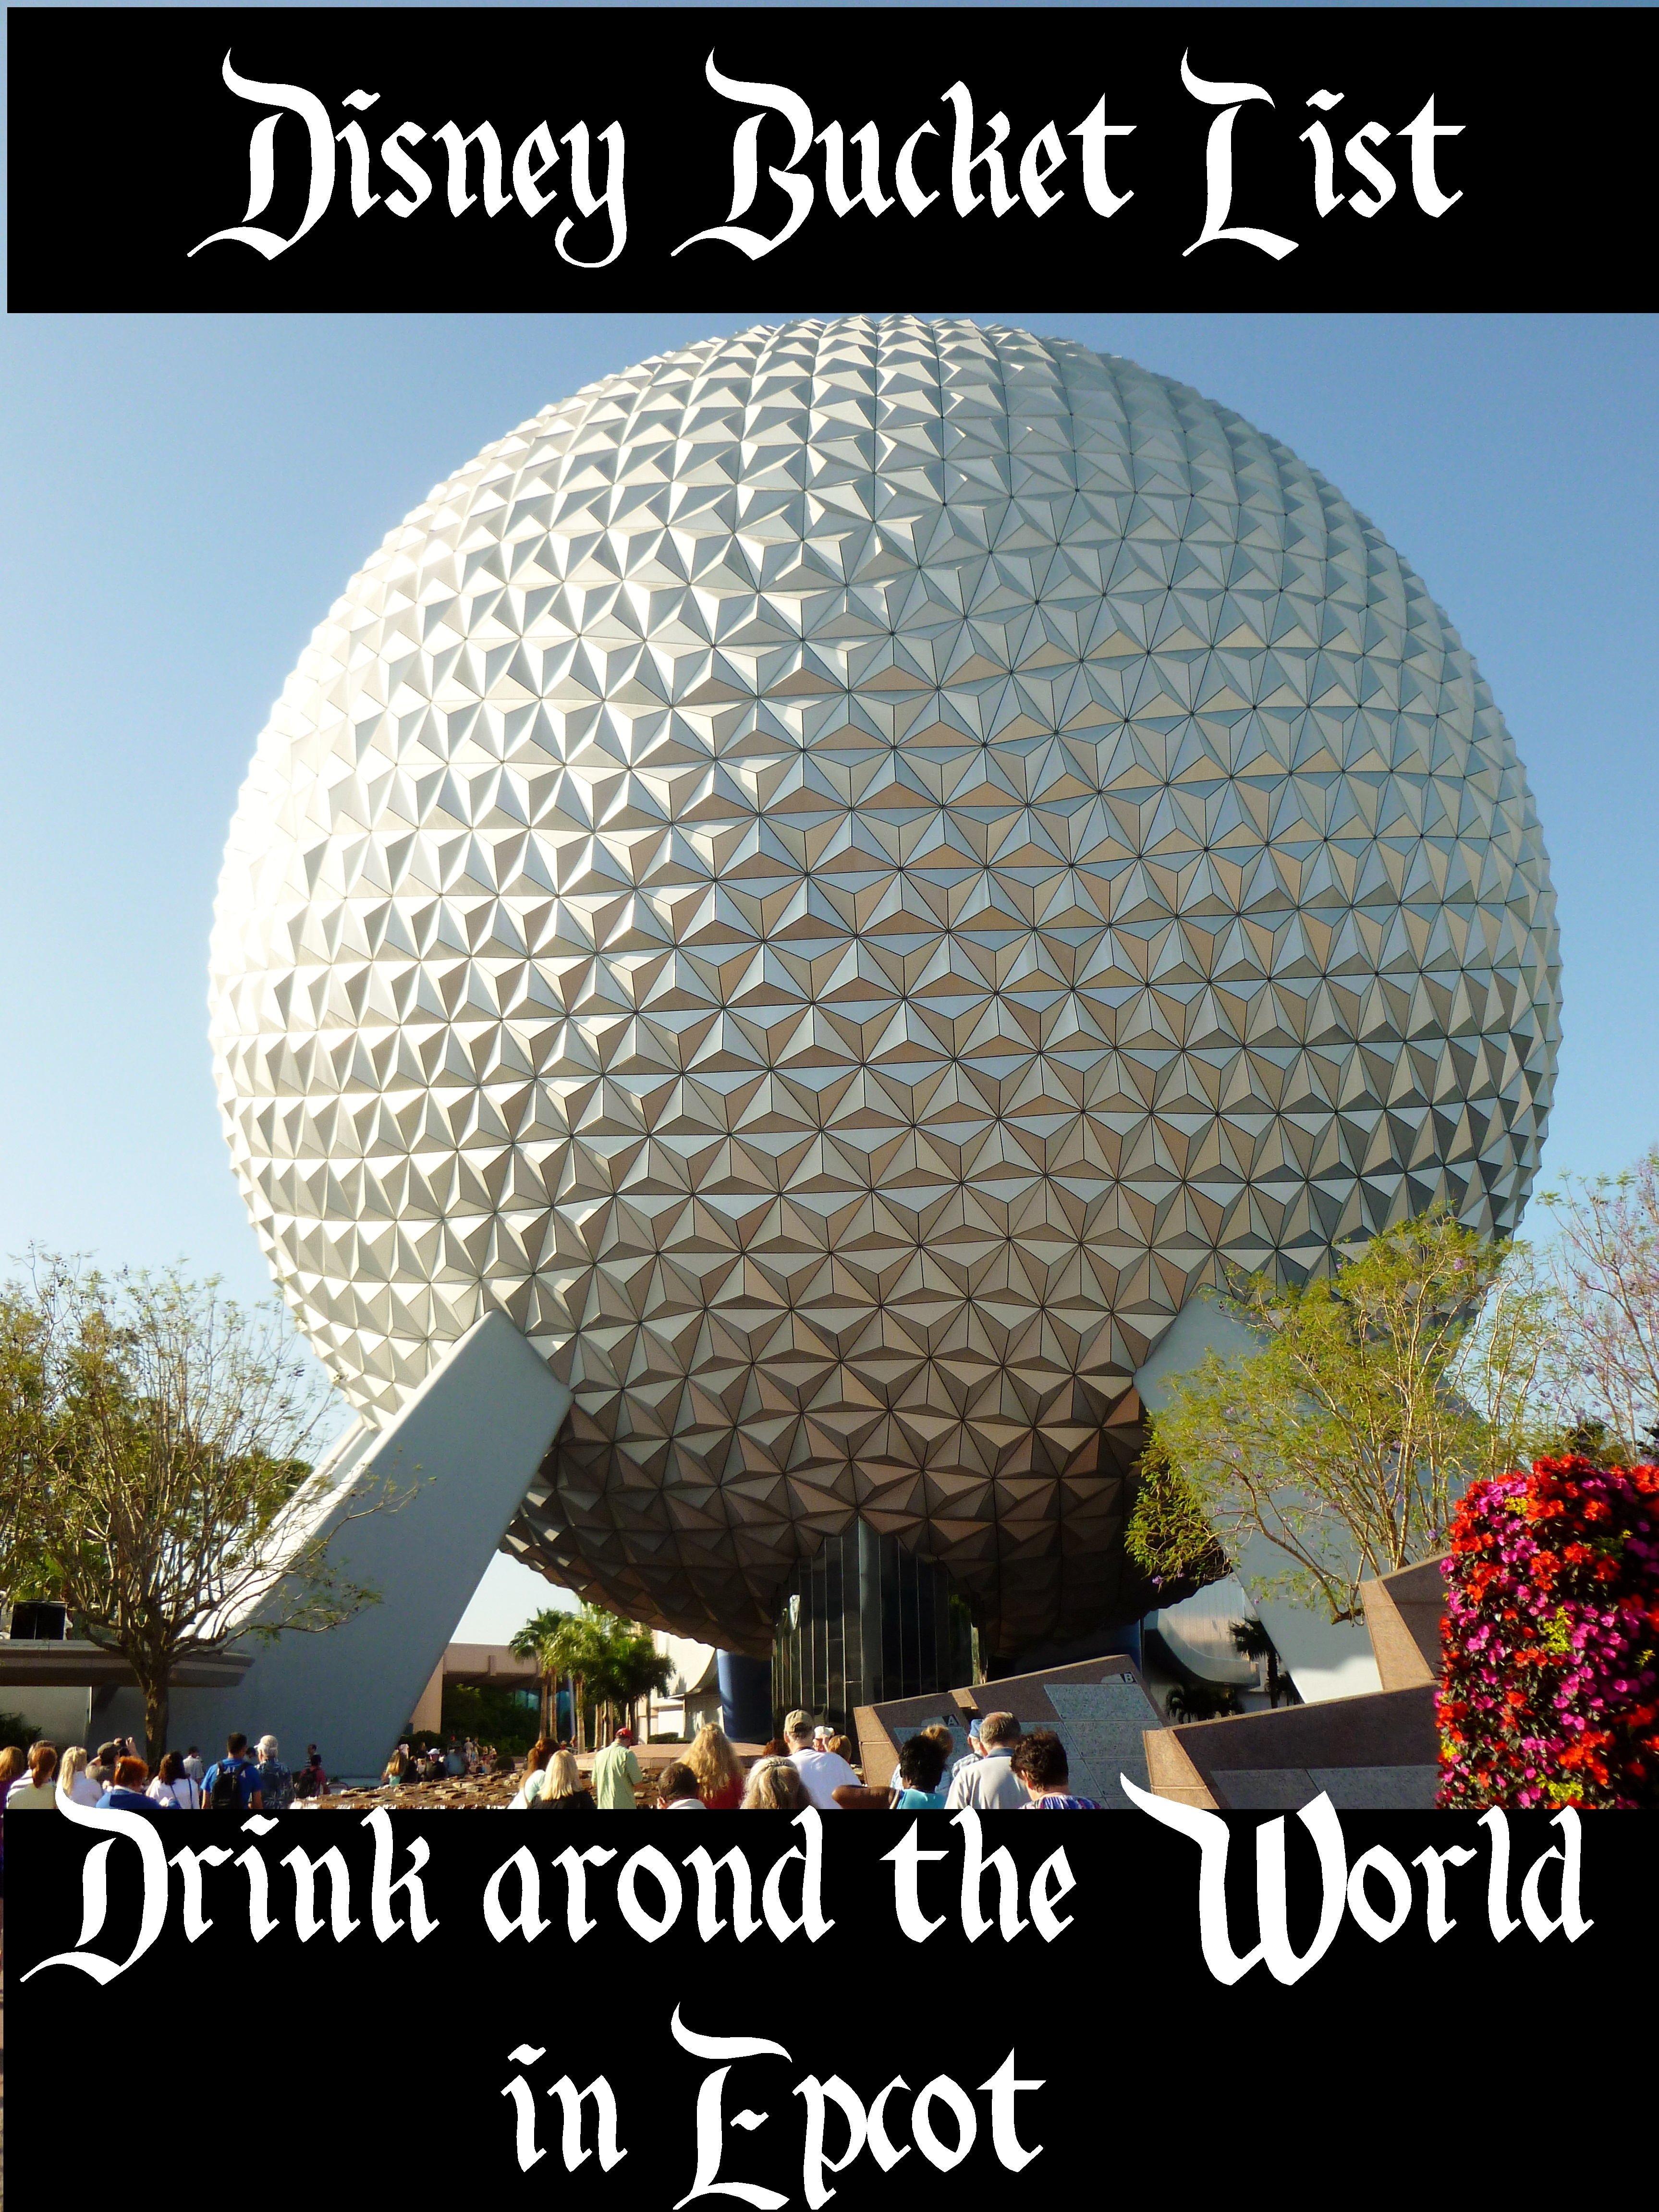 Drink around the World - Disney in your Day